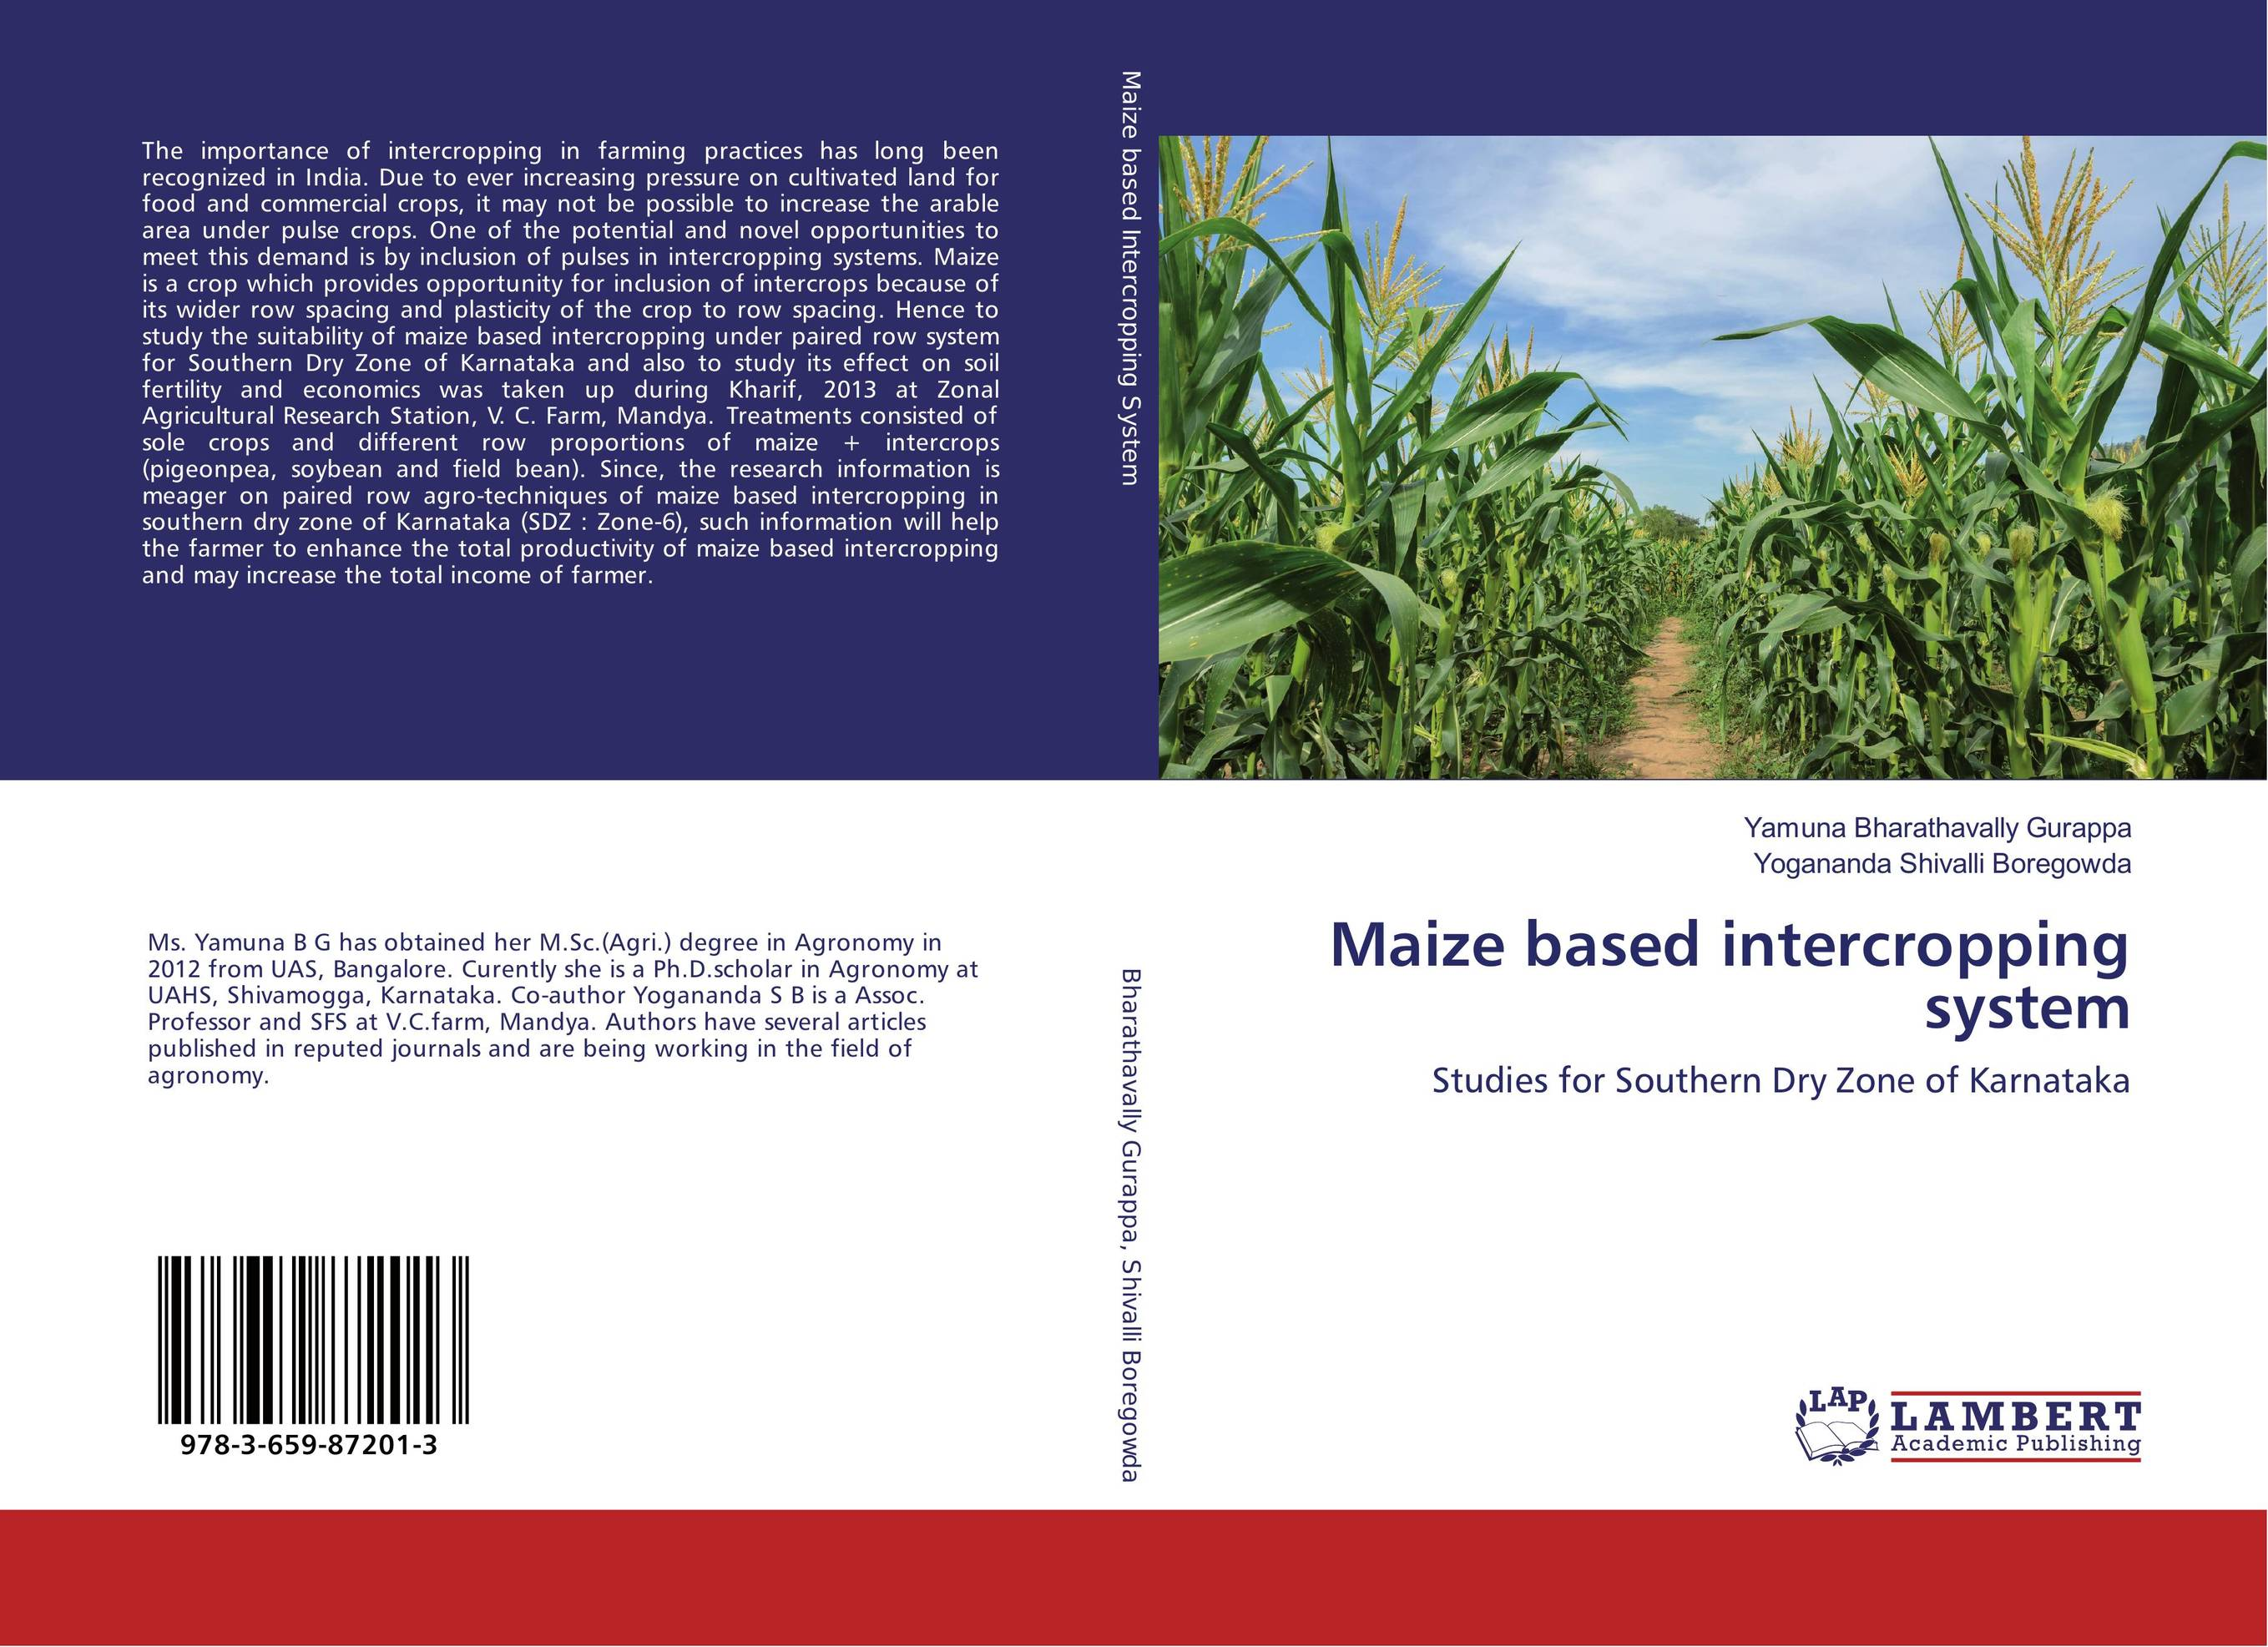 Maize based intercropping system